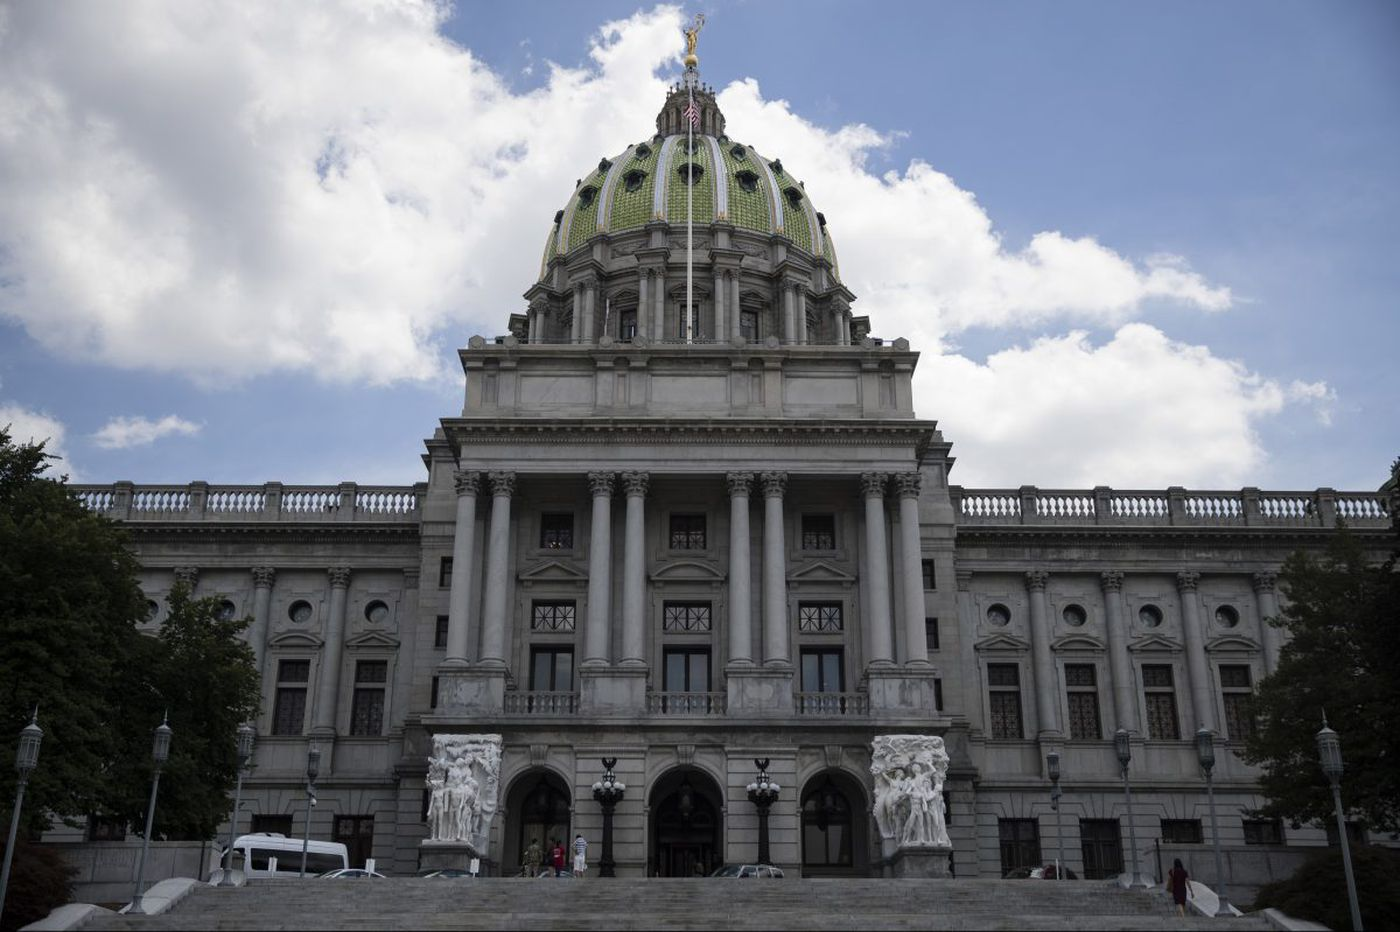 'Few but mighty': Female lawmakers outdo men in Pa., study says